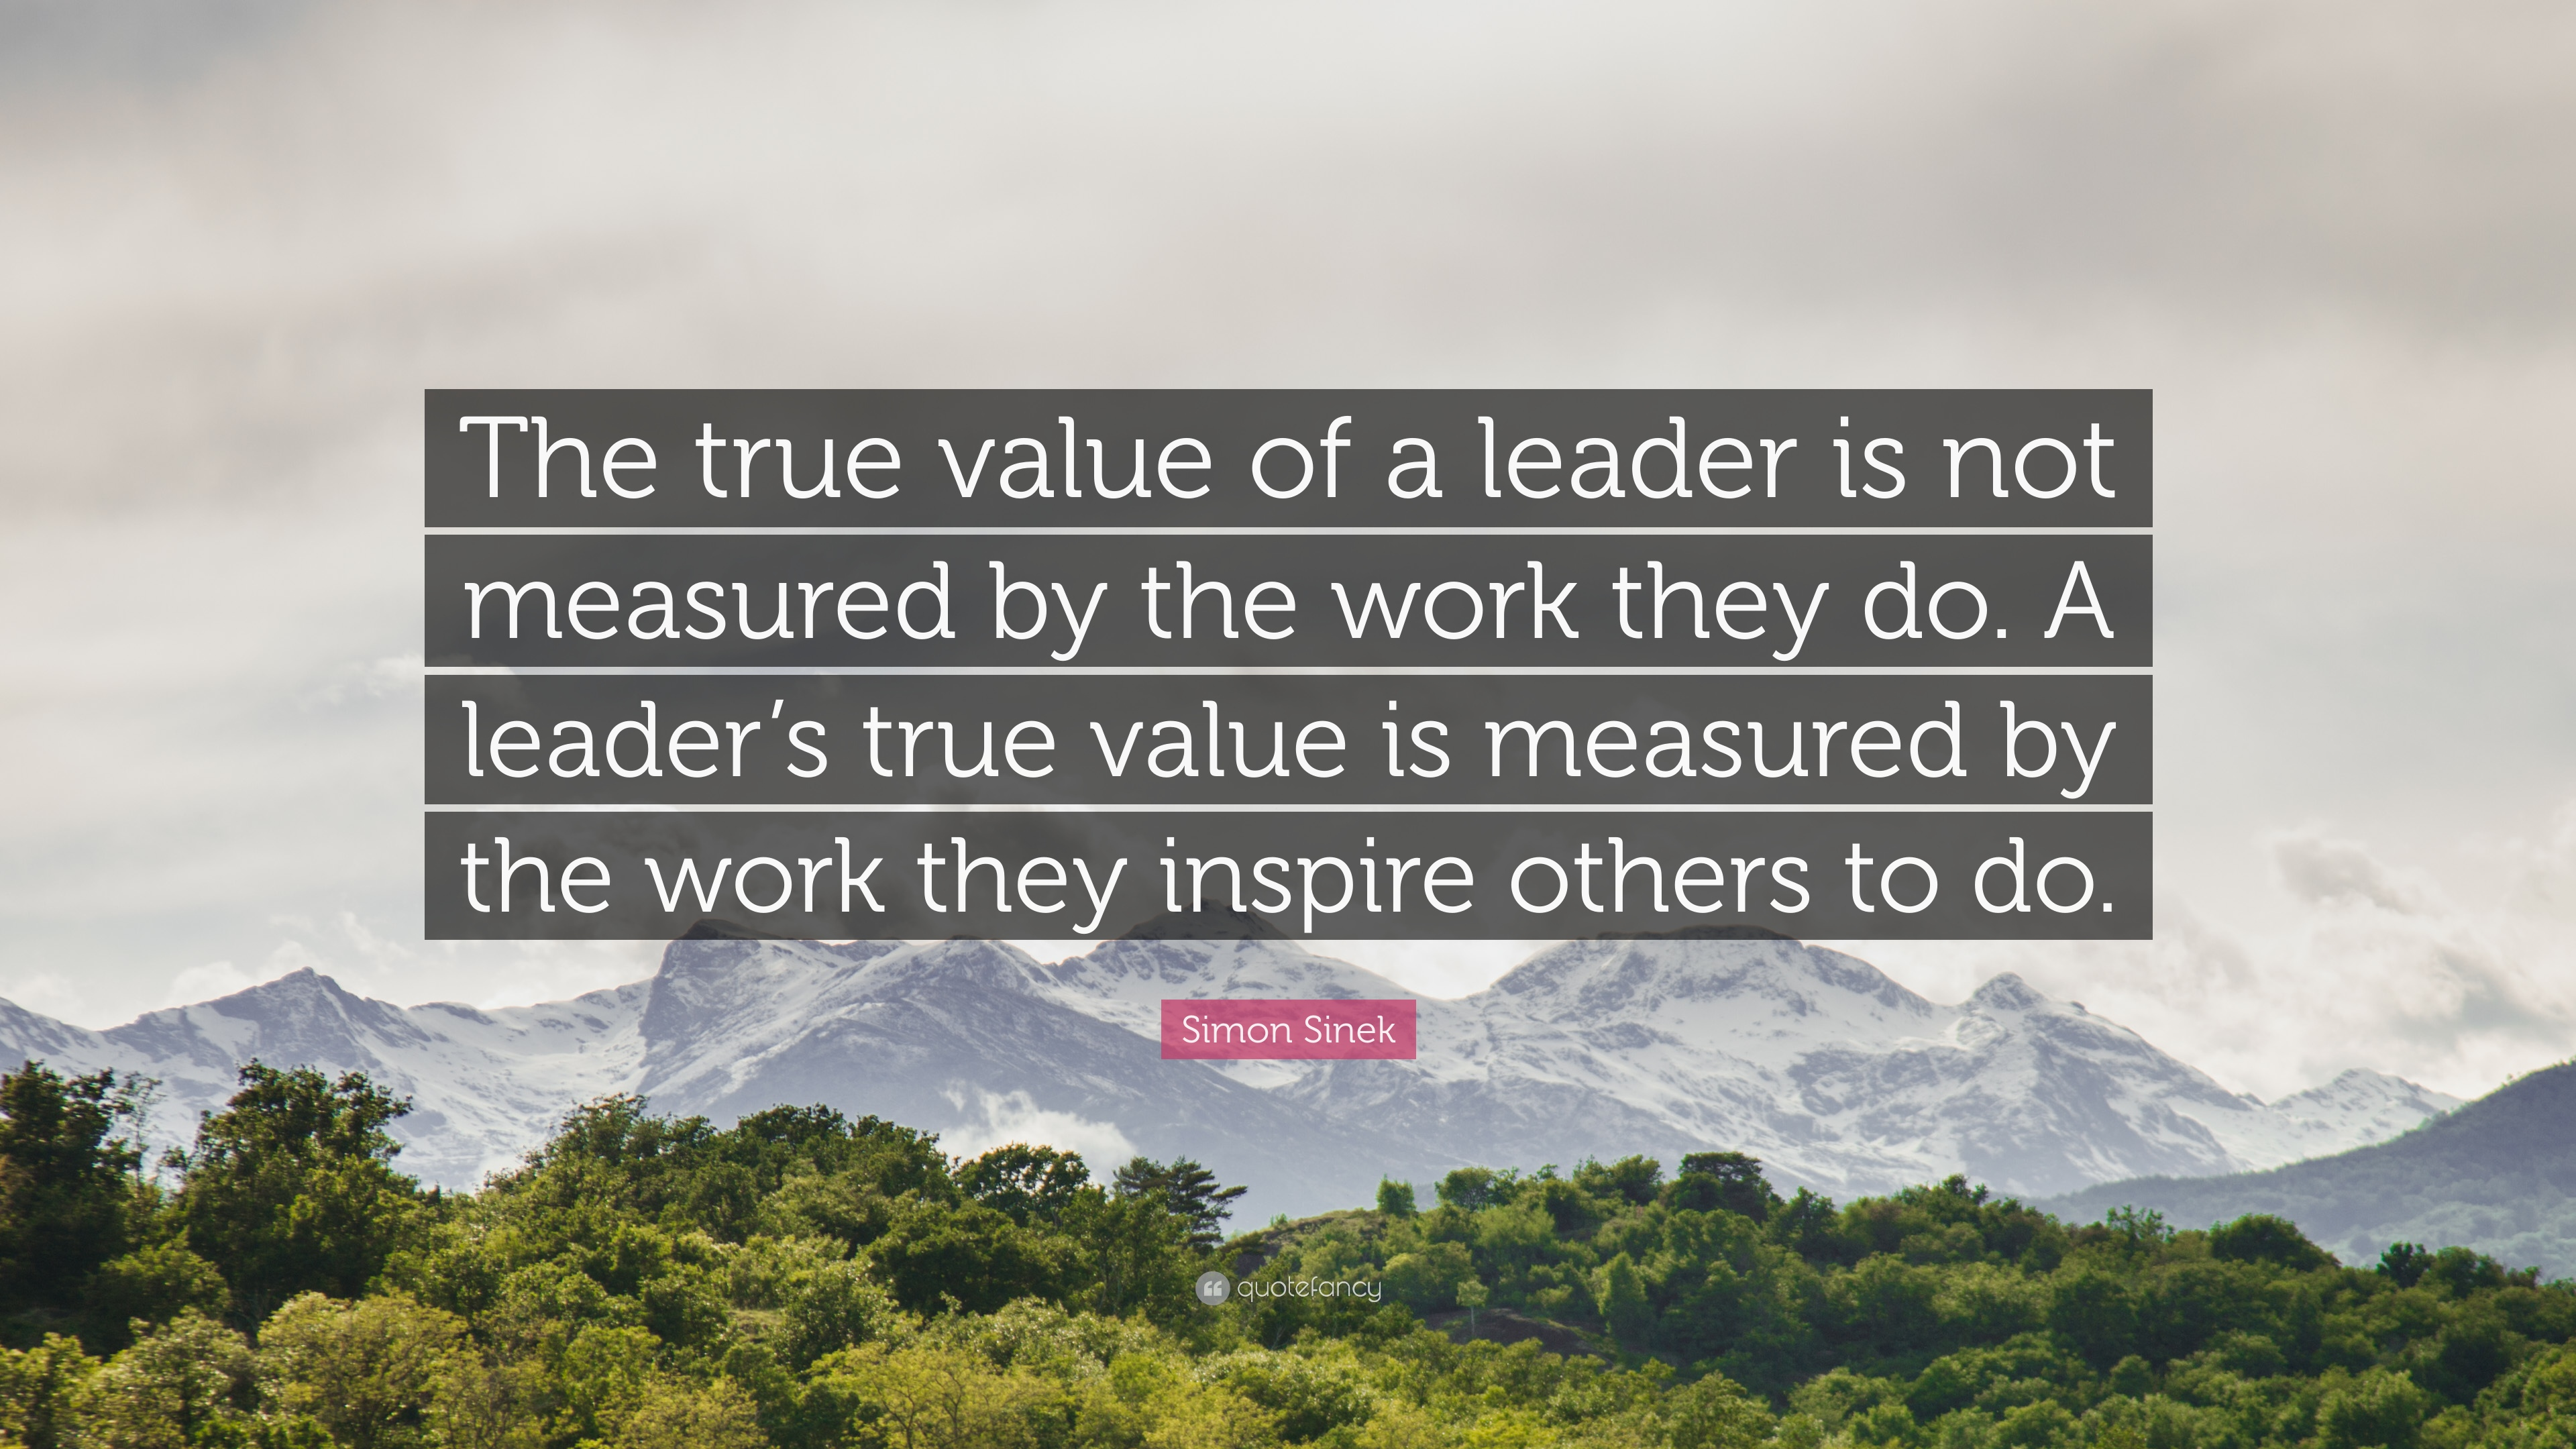 Simon Sinek Quote The True Value Of A Leader Is Not Measured By